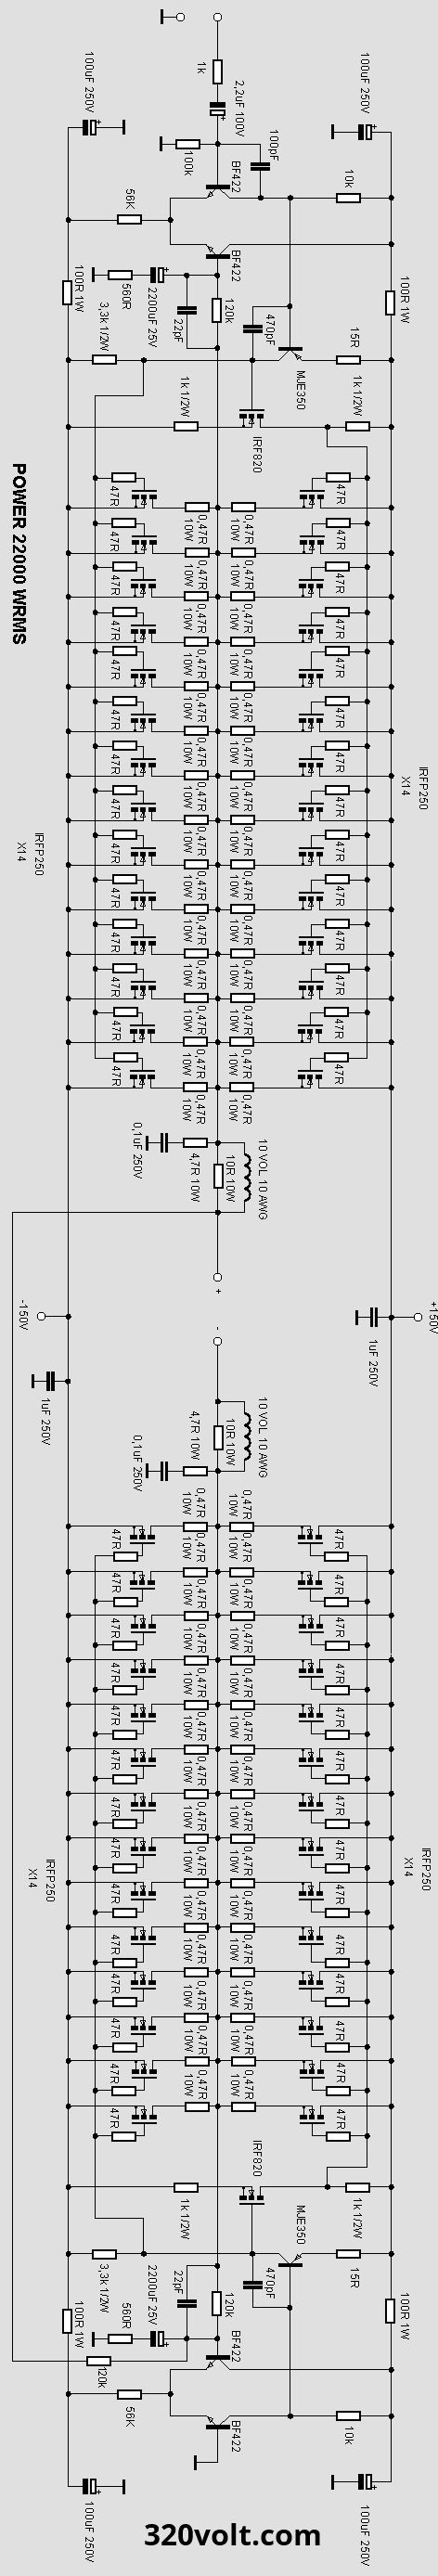 small resolution of  wrg 0912 1000 watts amplifier circuit diagrams